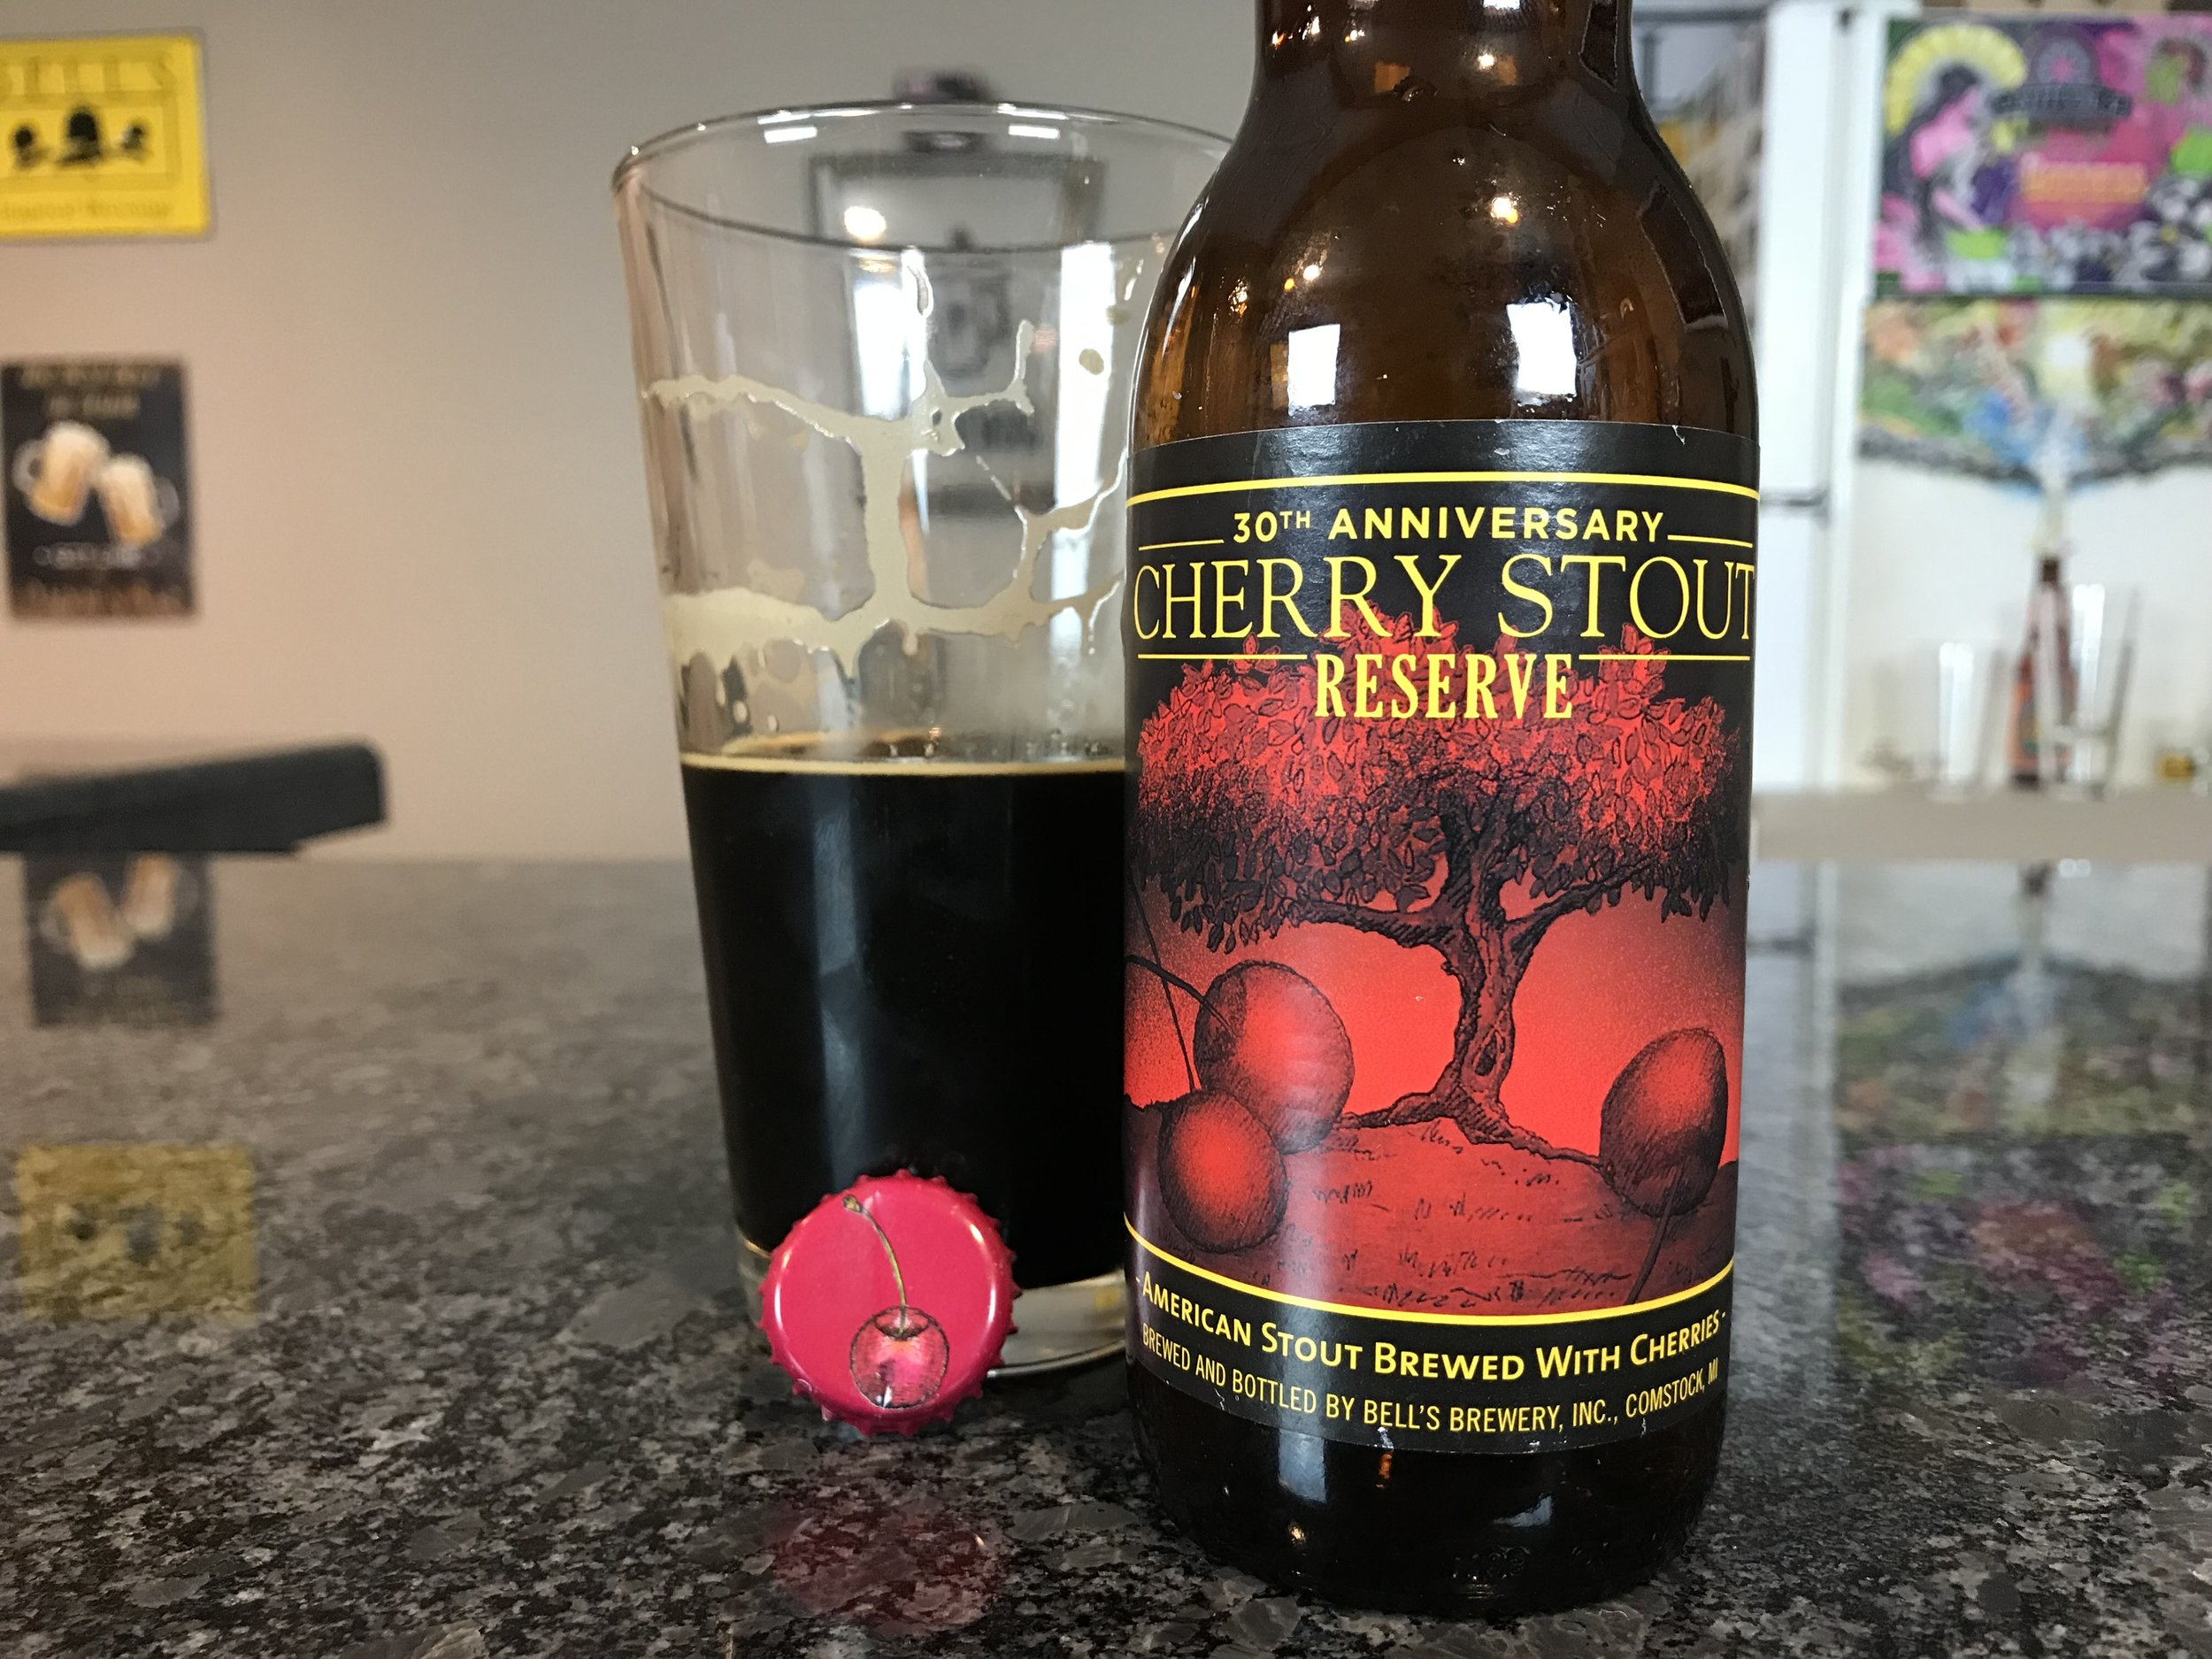 30th Anniversary Cherry Stout - Want to see the Video review? Click on the image.